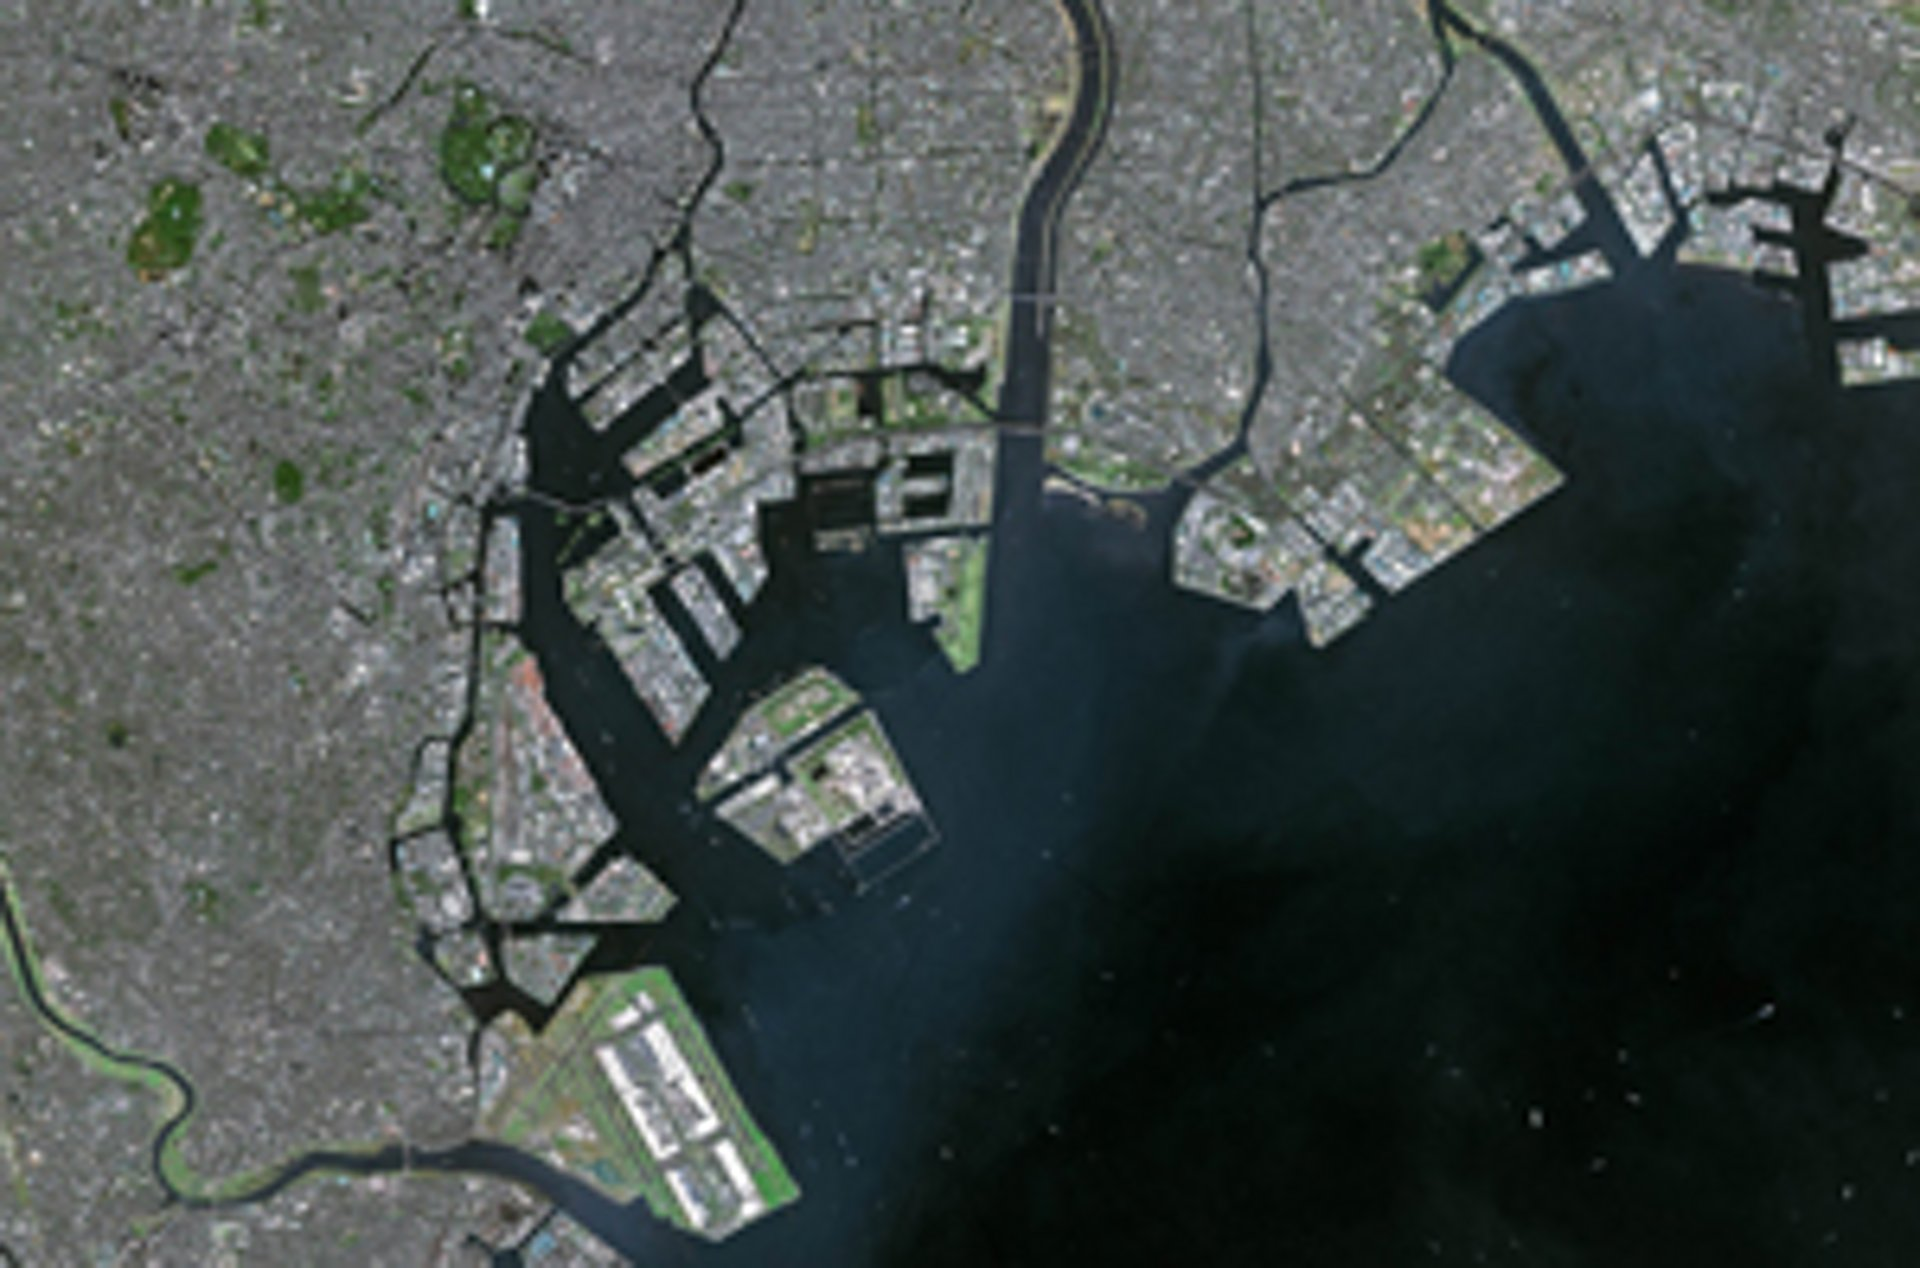 Satellite image of a port area provided by an Airbus-produced Earth observation satellite.